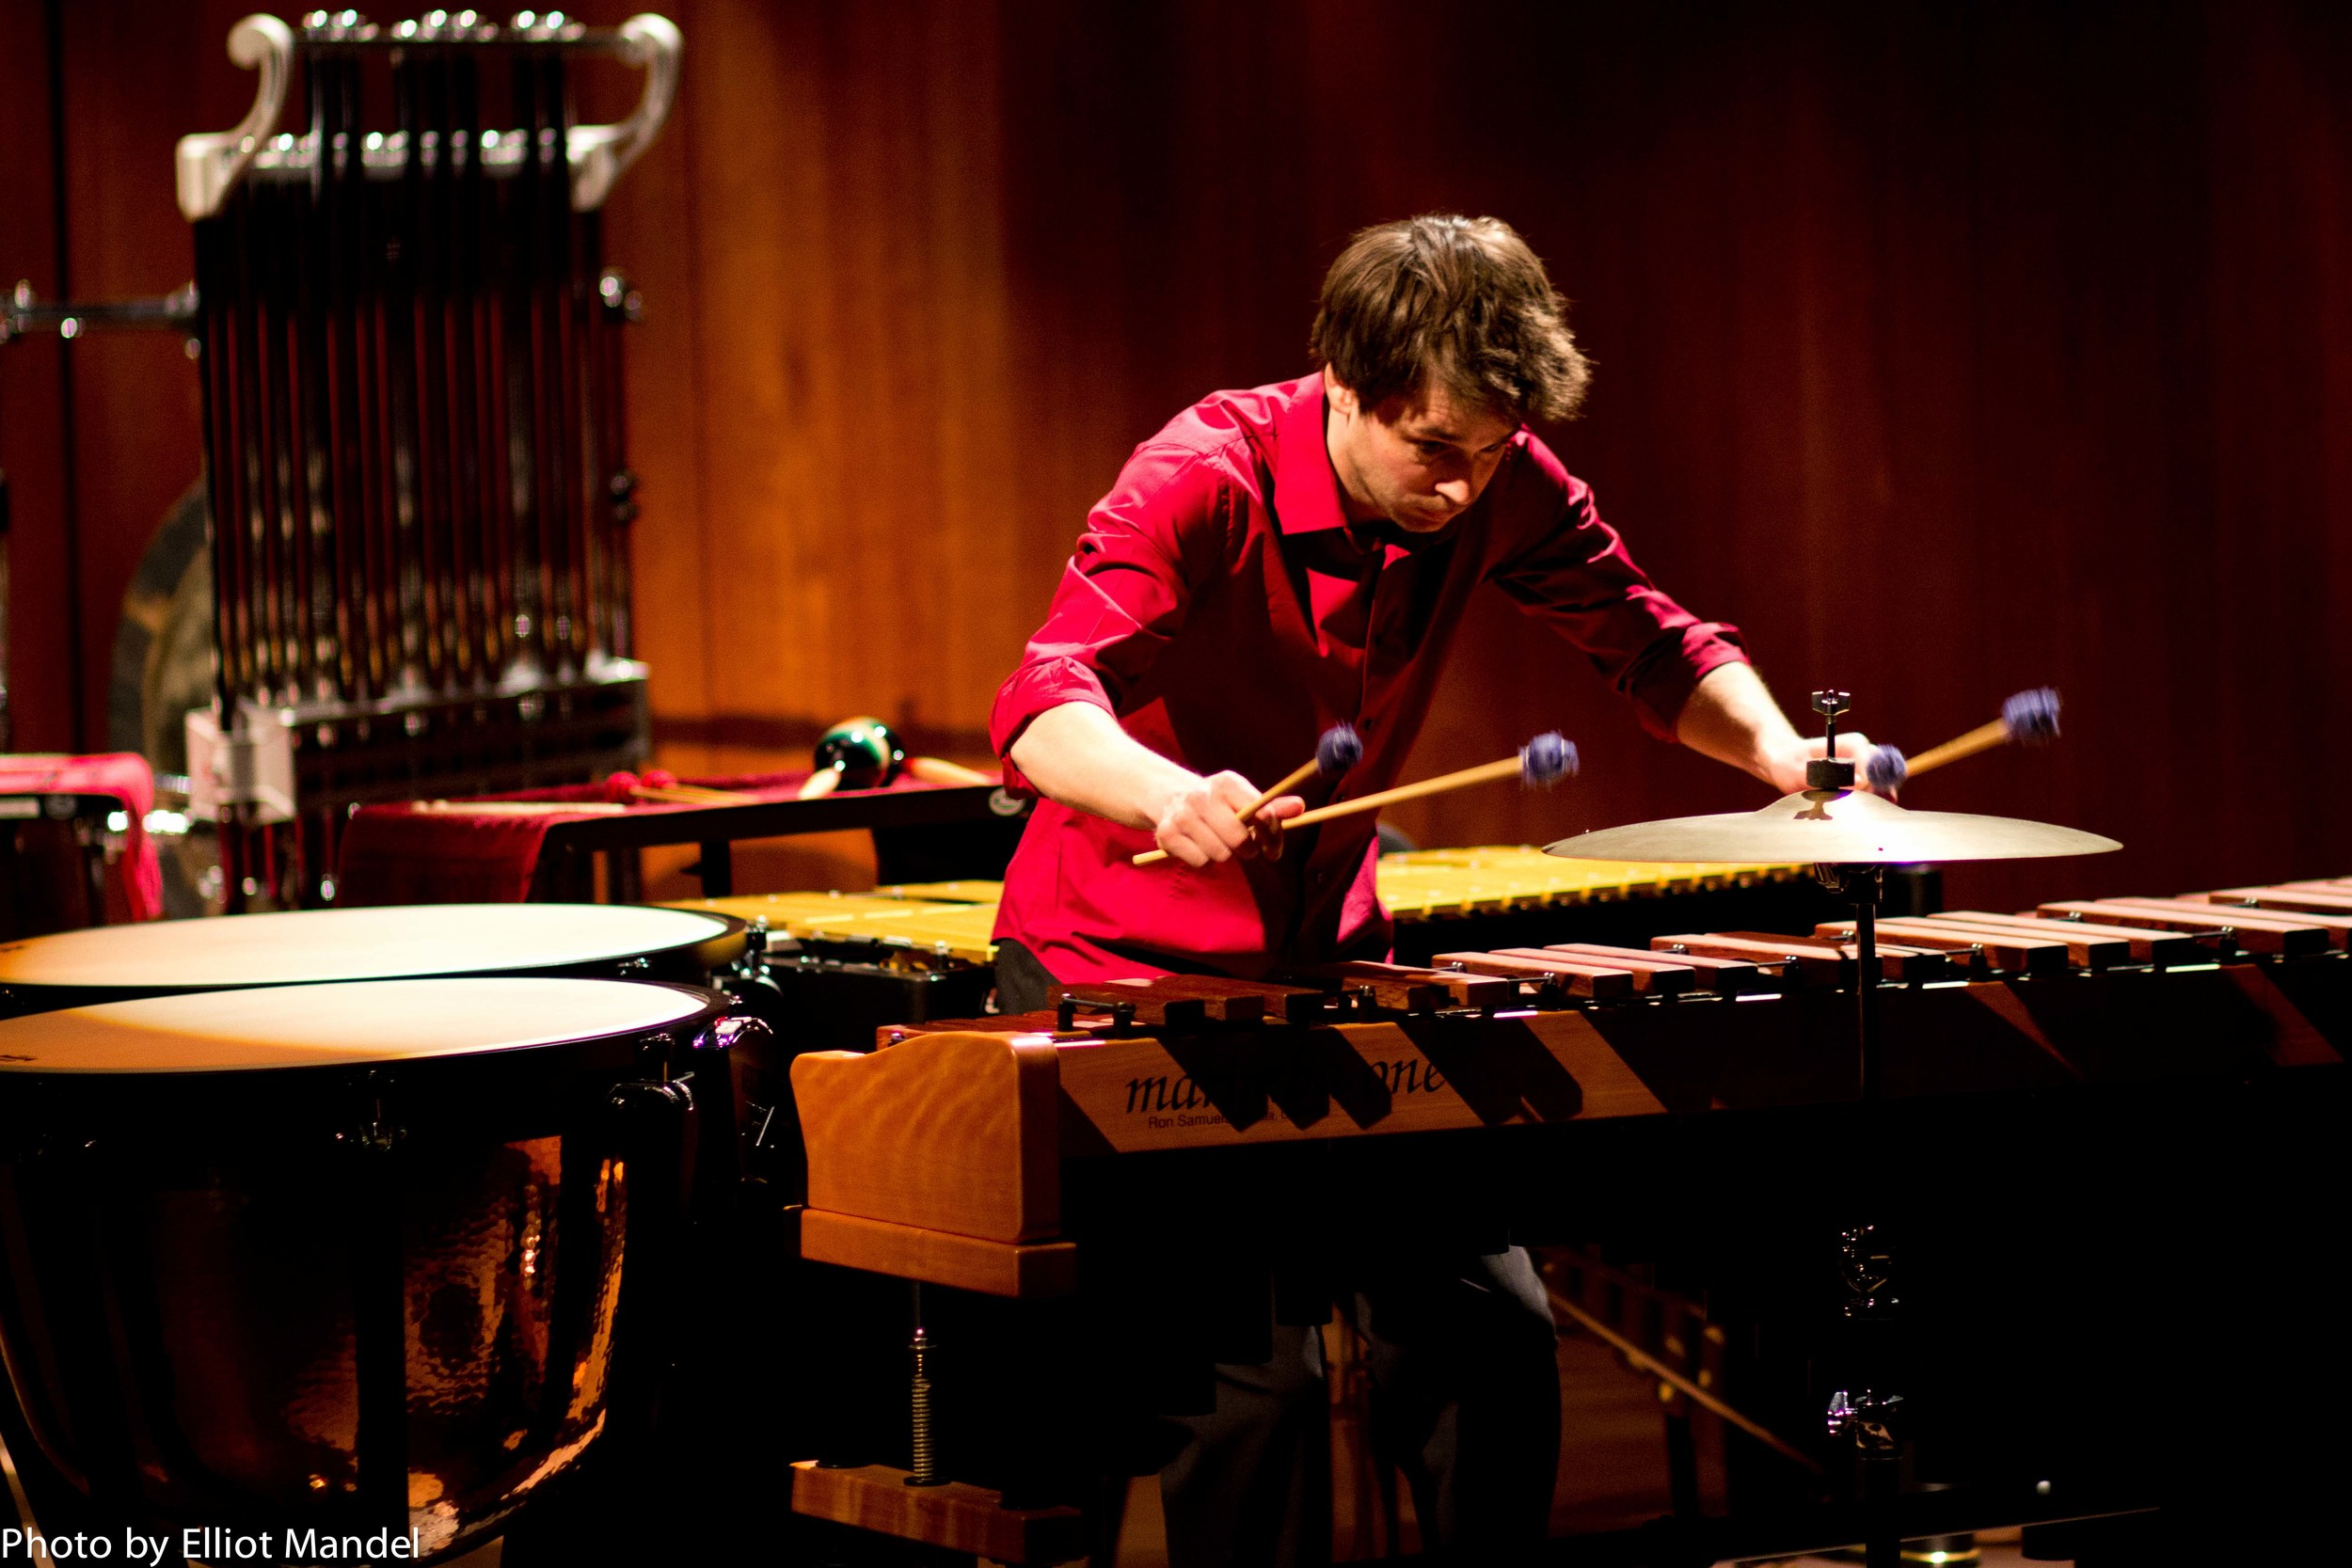 Percussionist Nicholas Reed